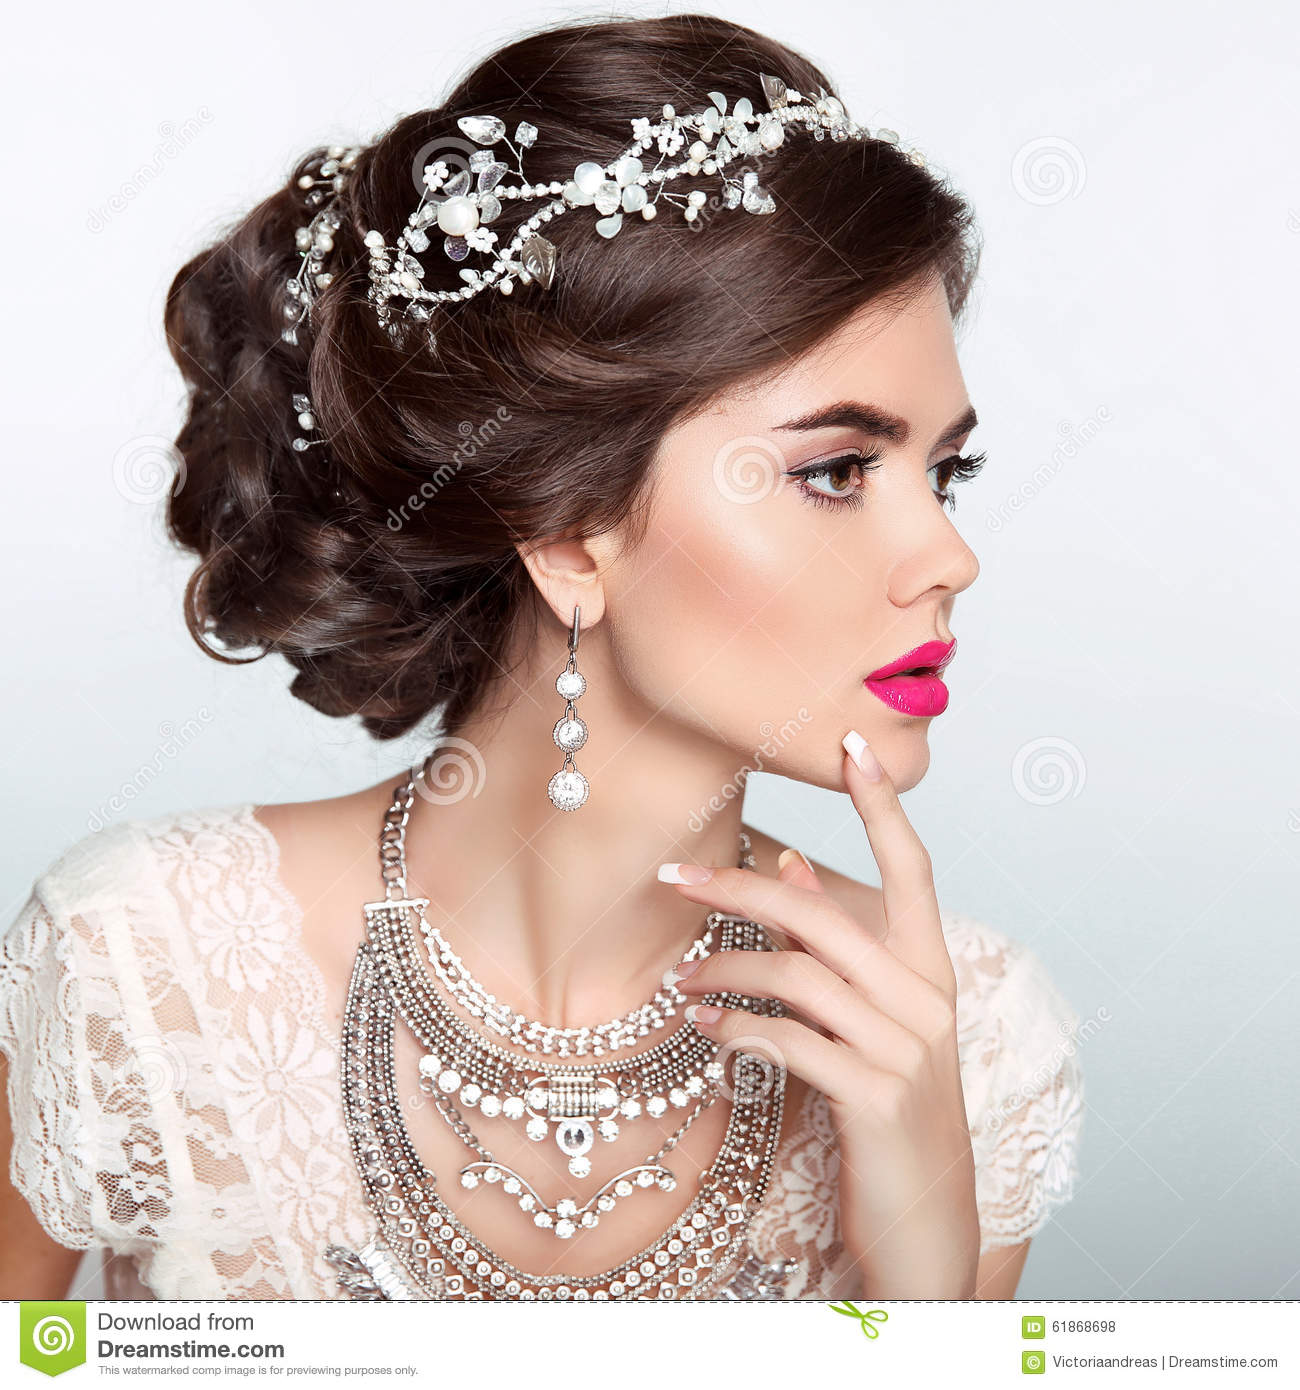 Beauty Fashion Model Girl With Wedding Elegant Hairstyle